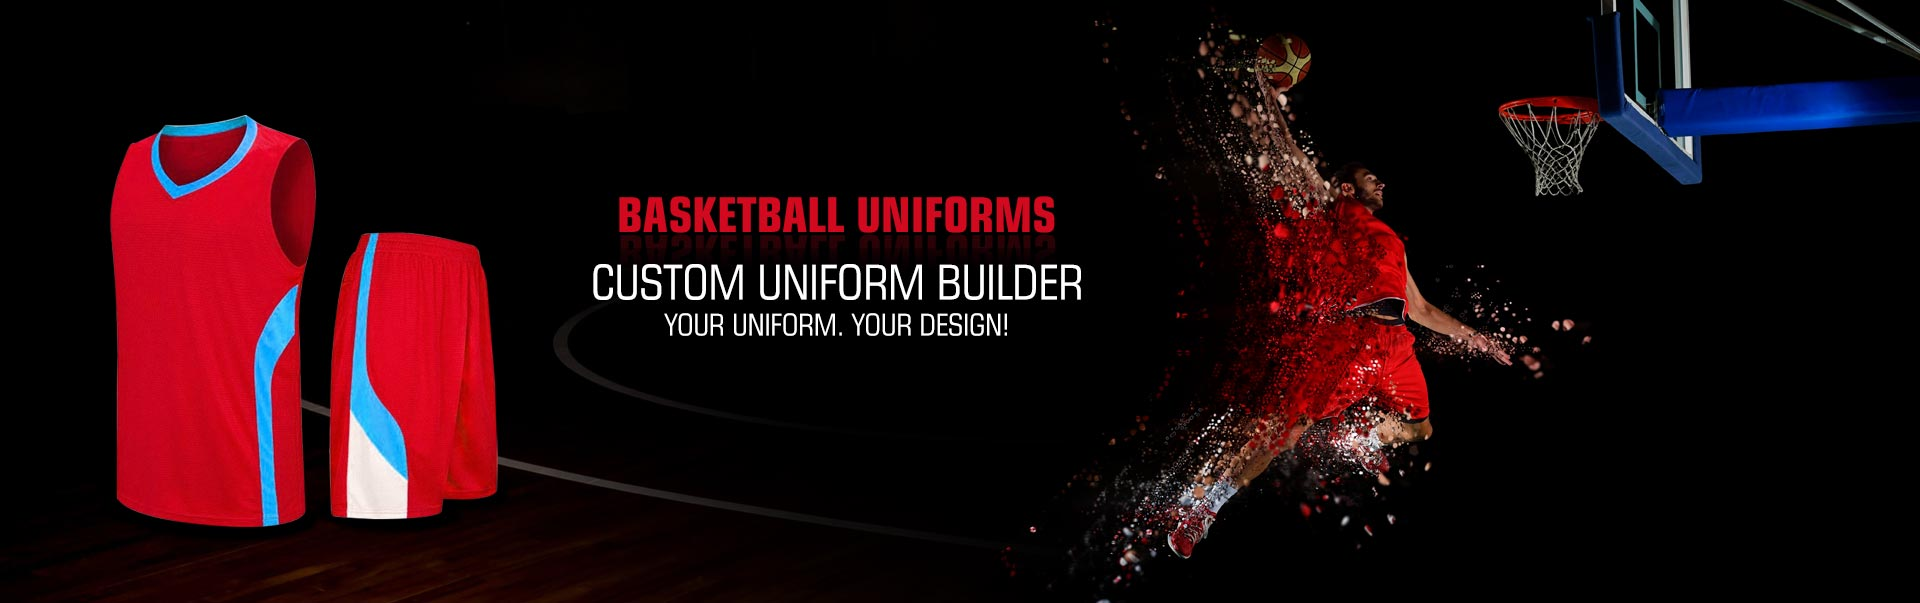 Basketball Uniforms Wholesaler, Suppliers in Lleida